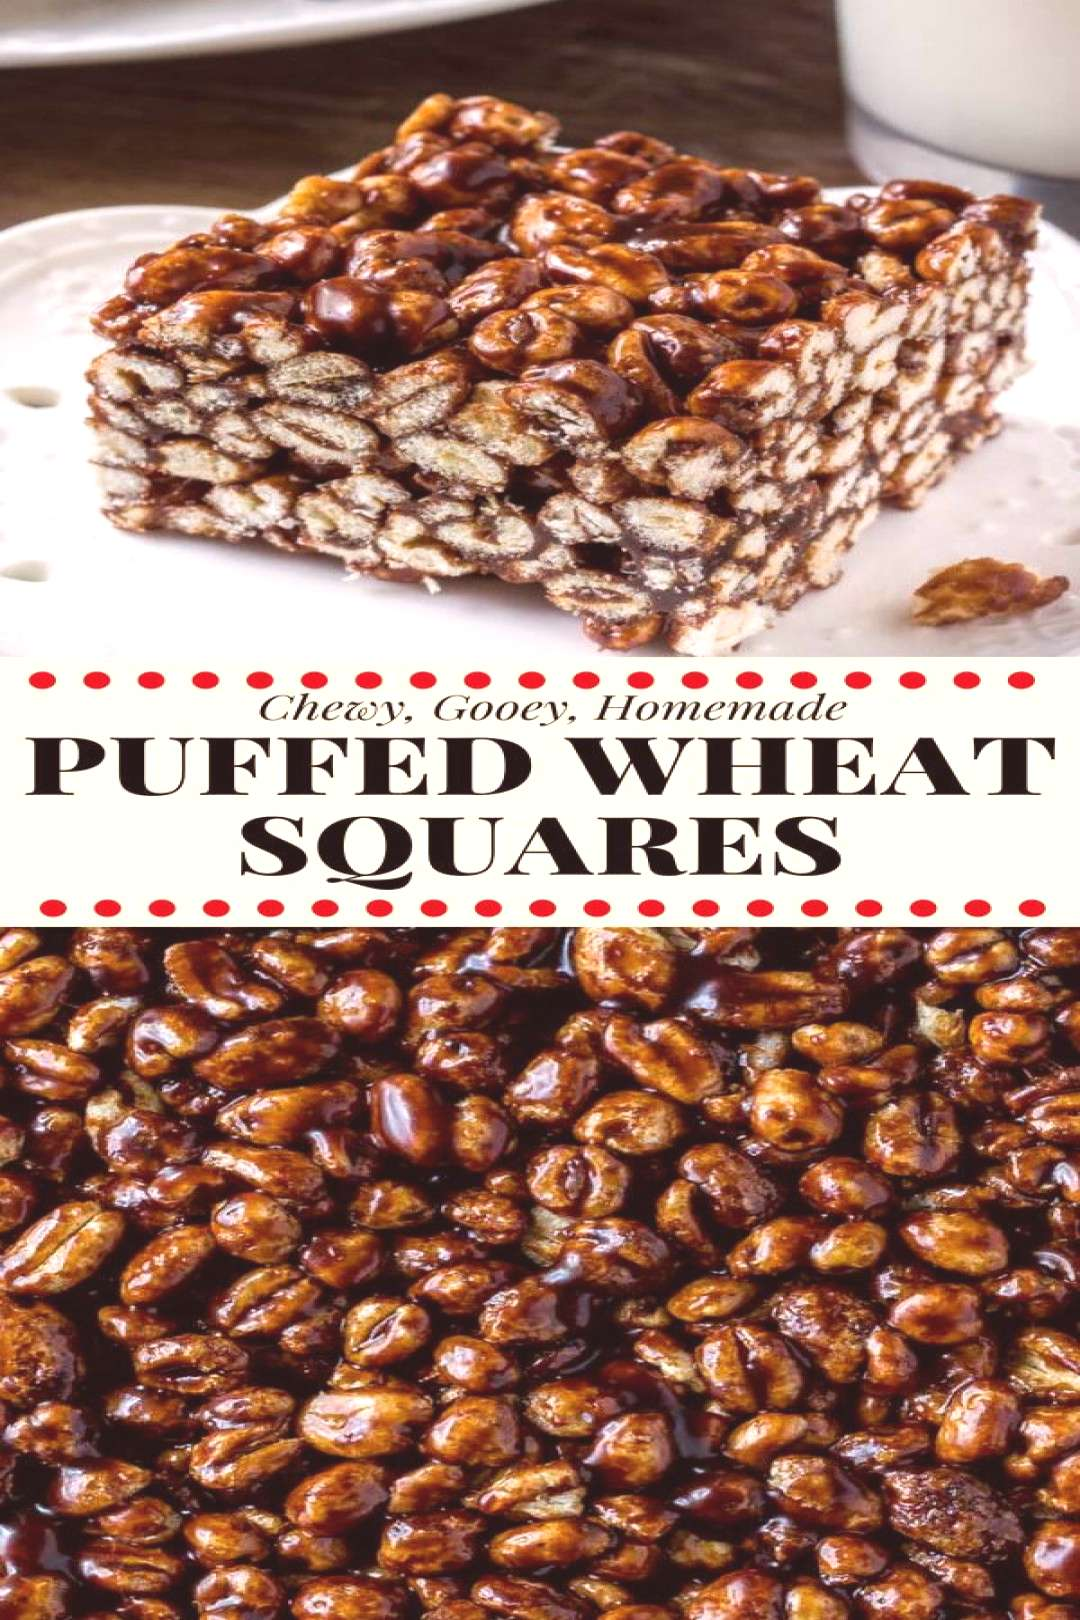 Puffed wheat squares are a classic, easy treat that always reminds me of childhood. They're chewy,